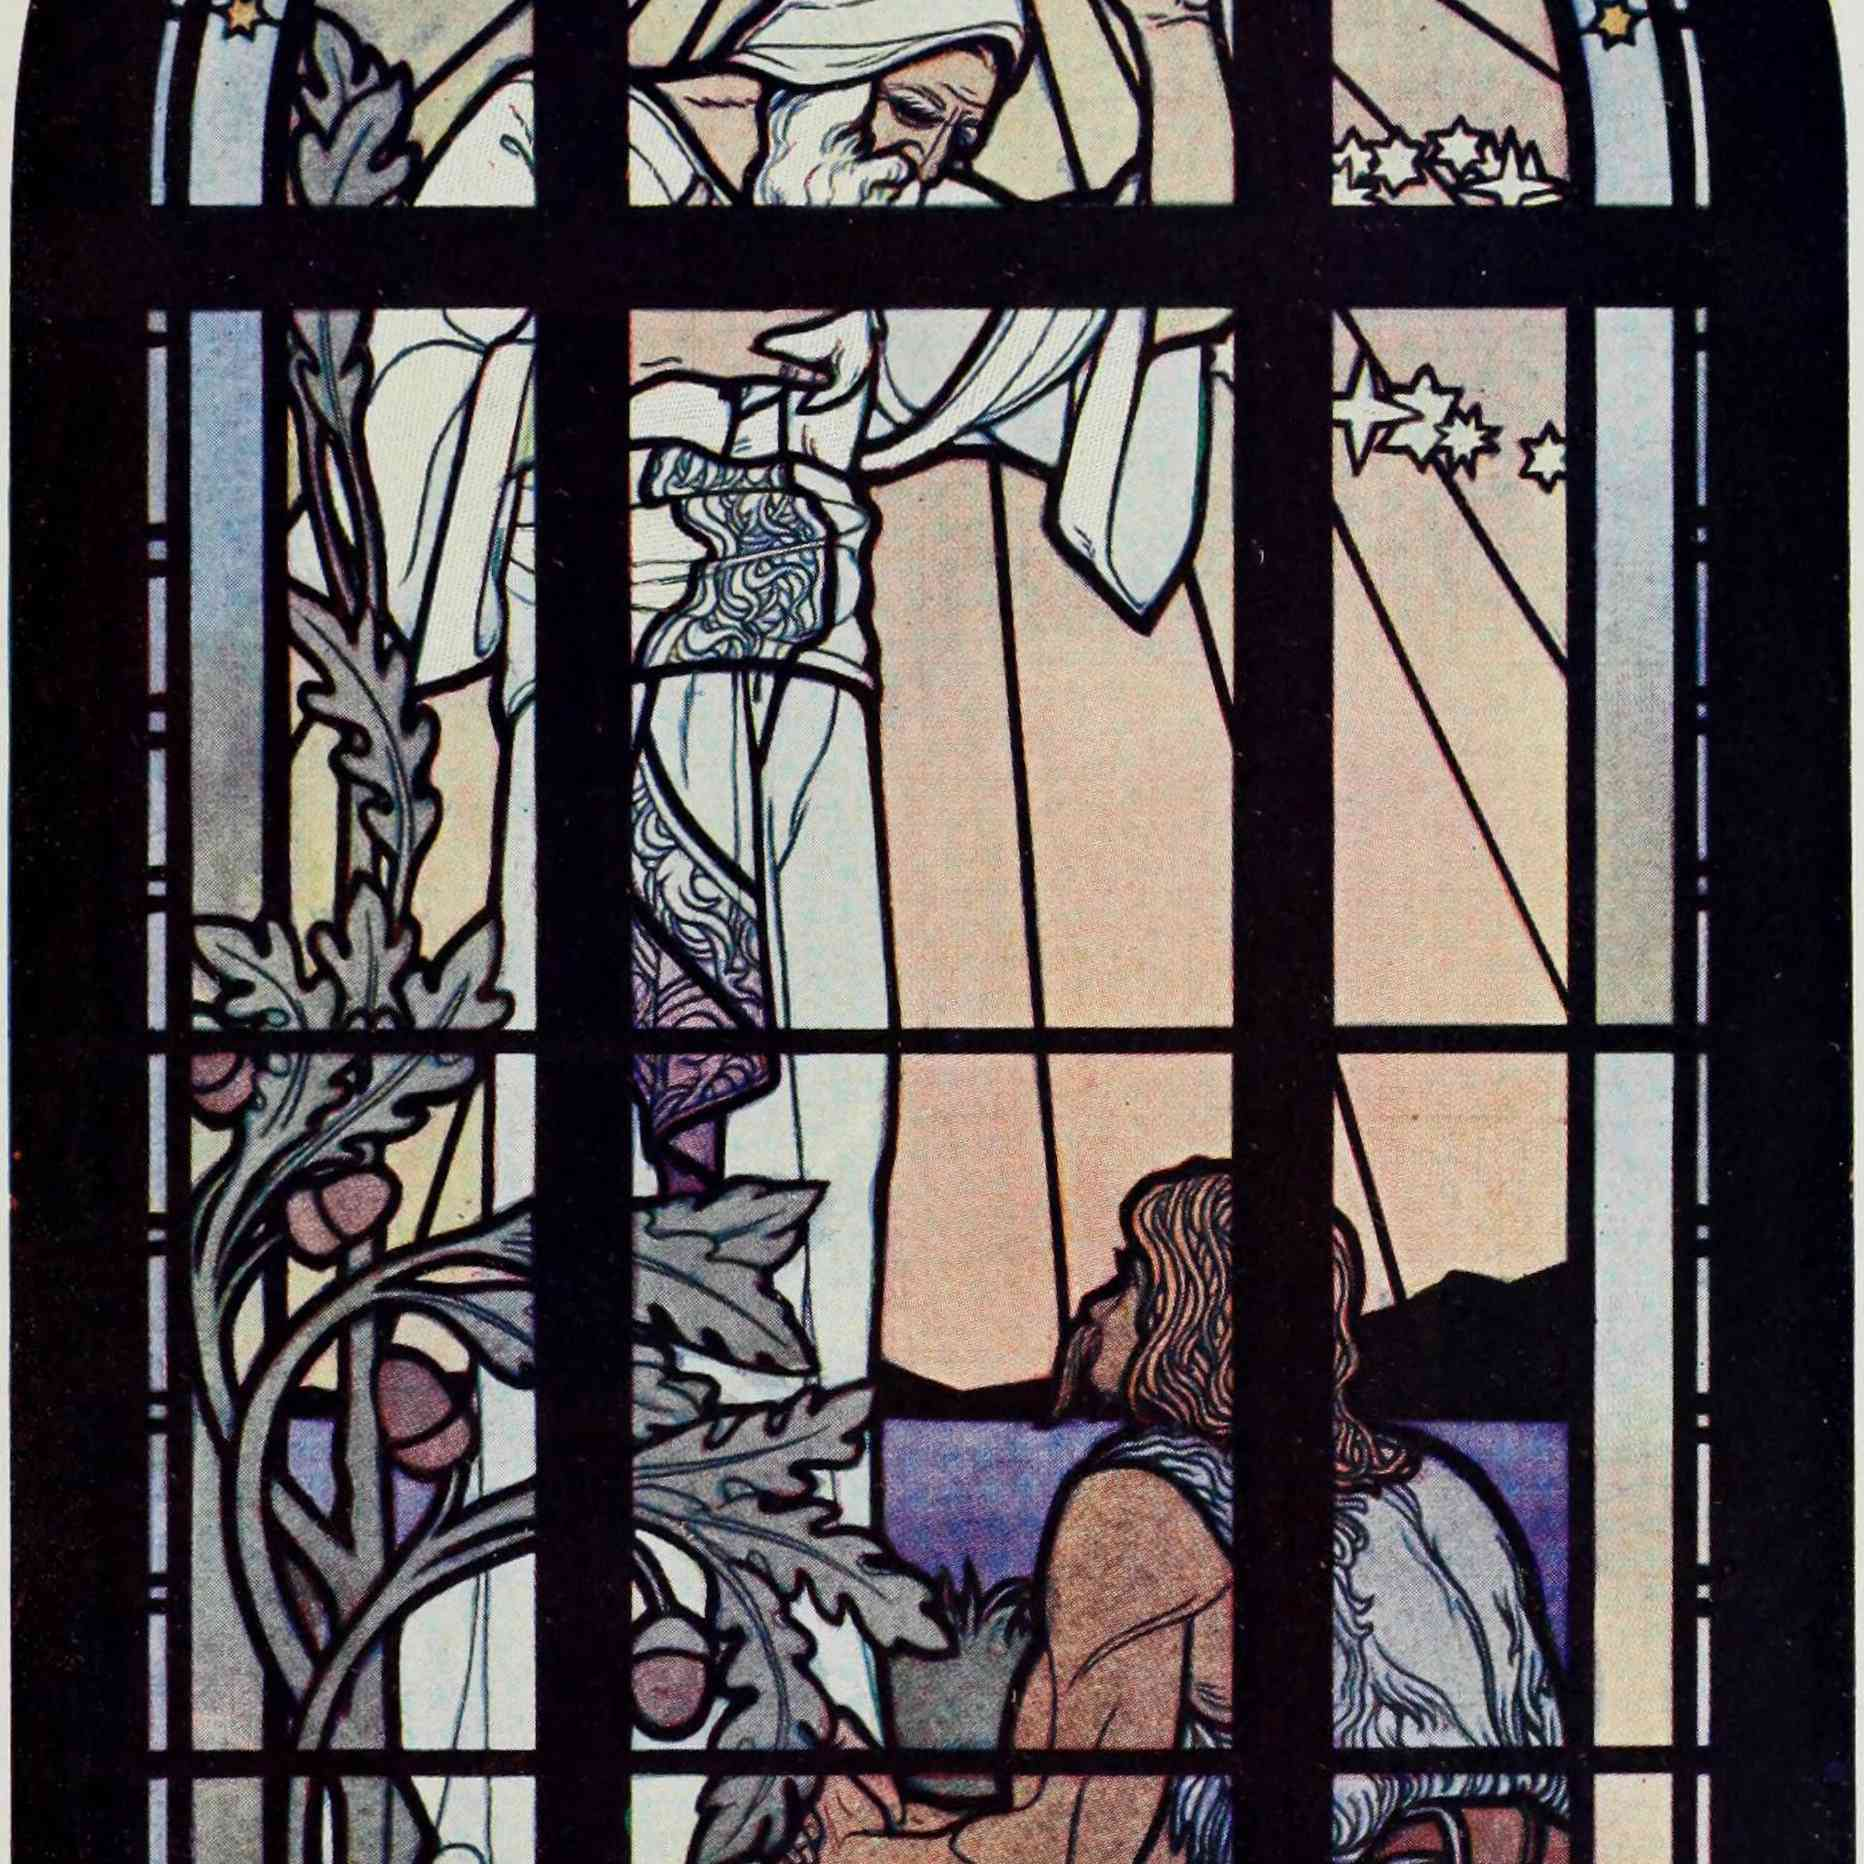 Rabbi Hillel and the gentile. Stained glass window in the lodge of Bnai Brith in Hamburg.